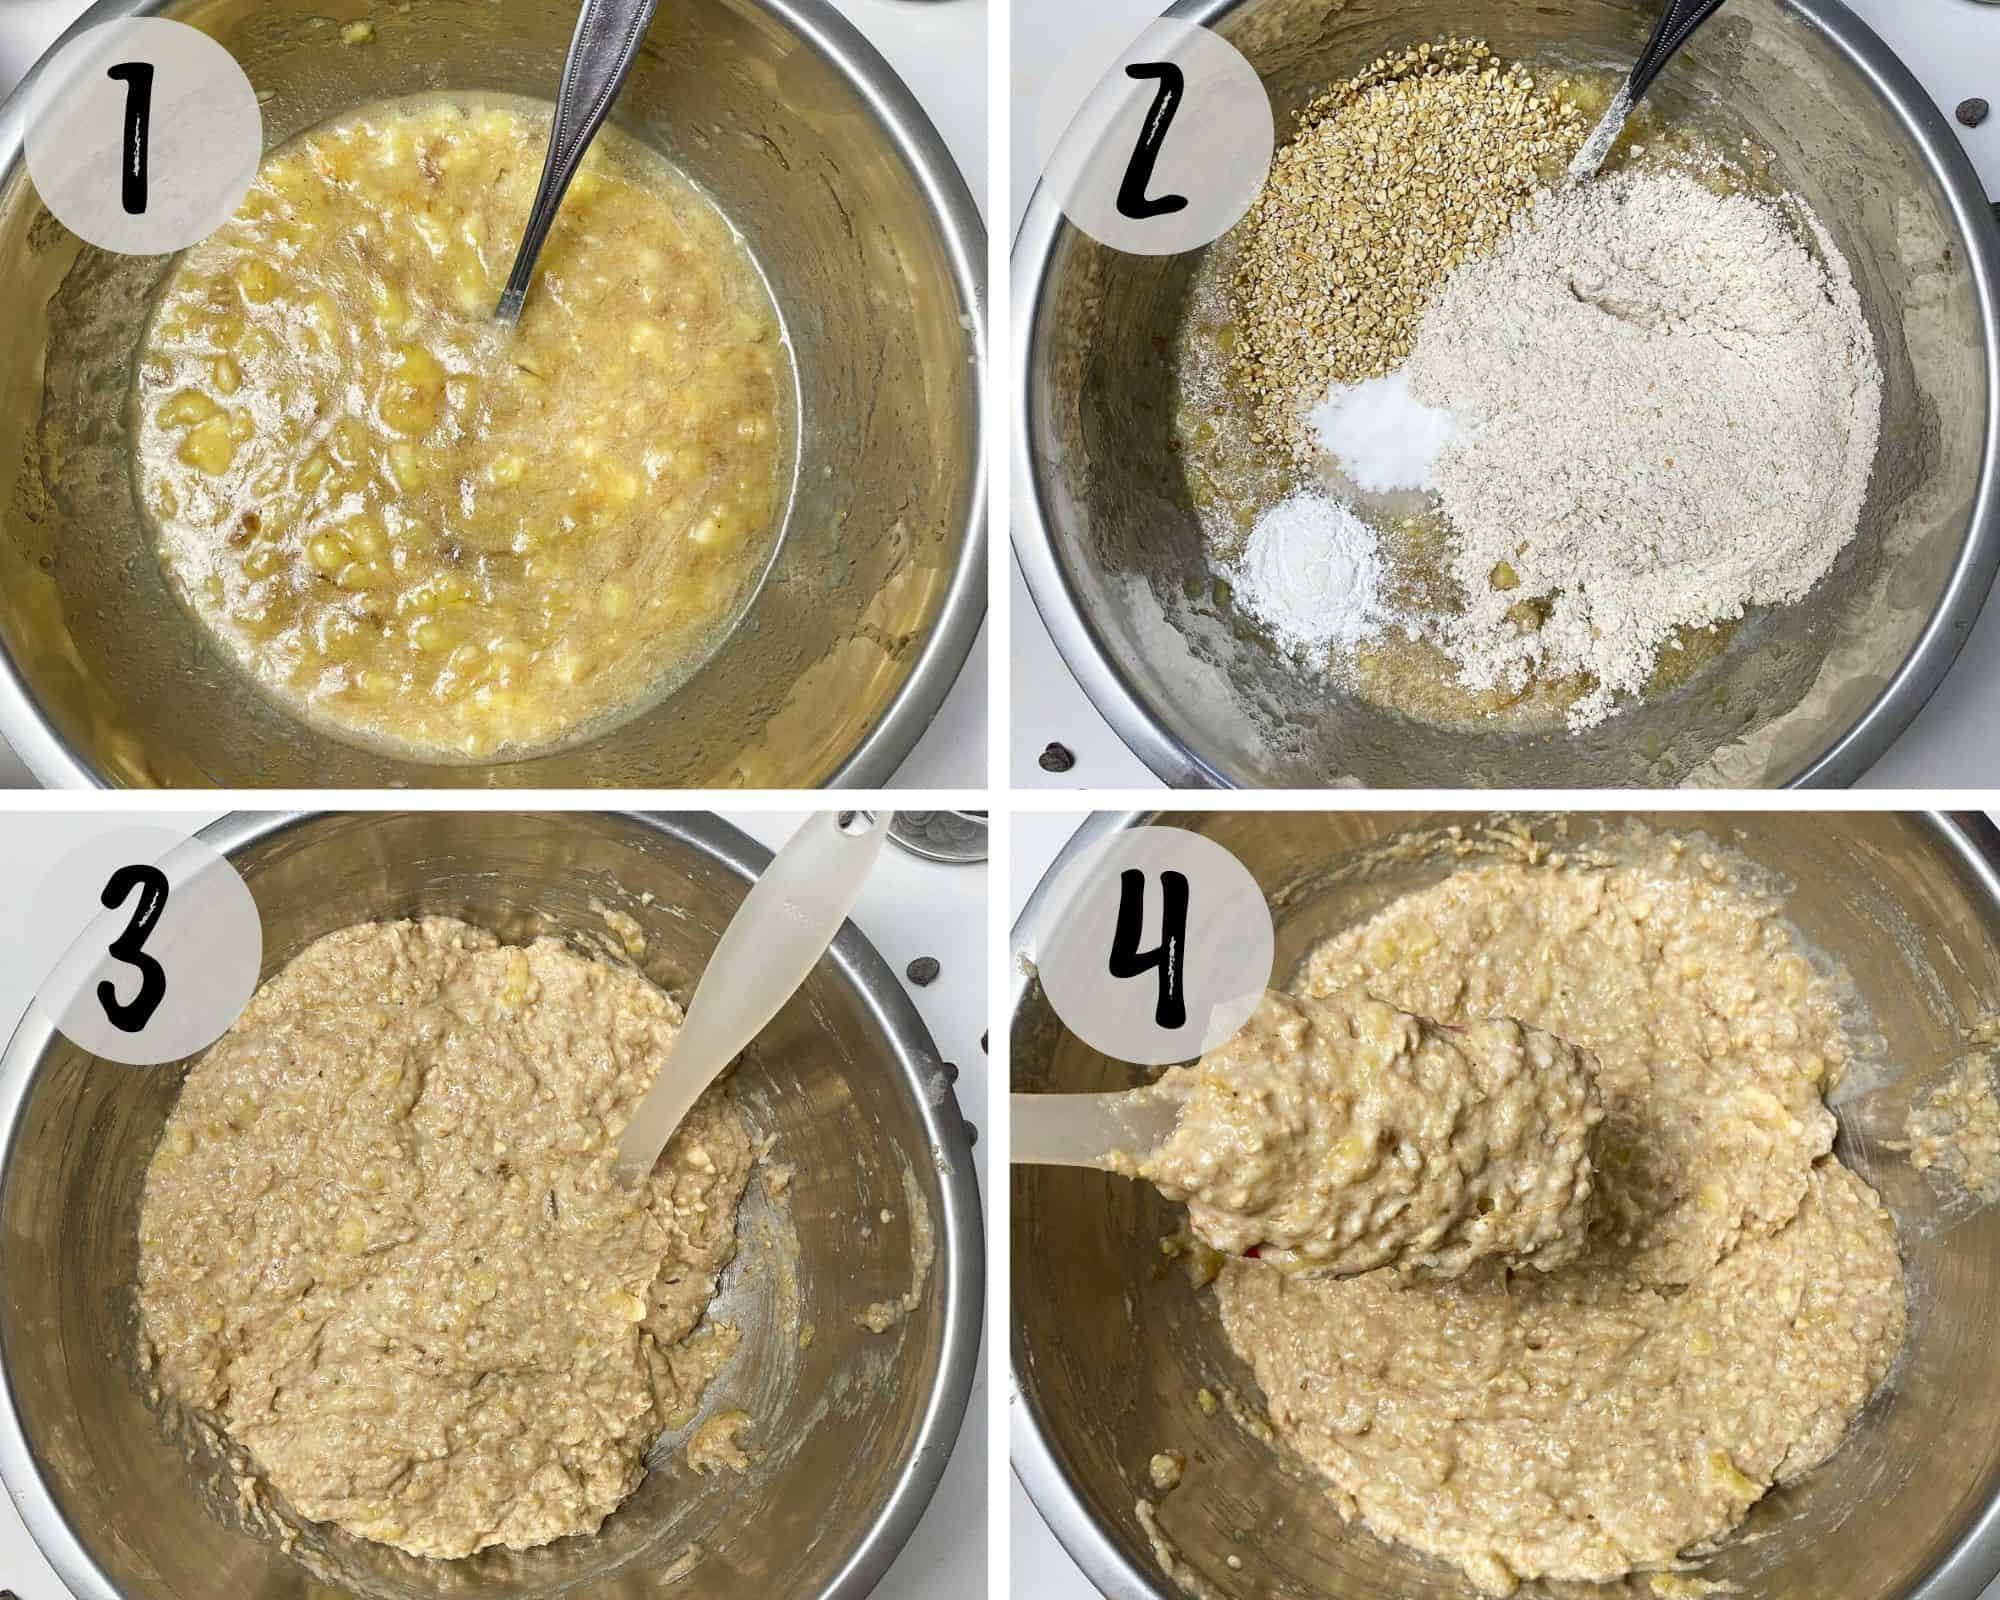 mixing bowl with banana bread batter being mixed together.